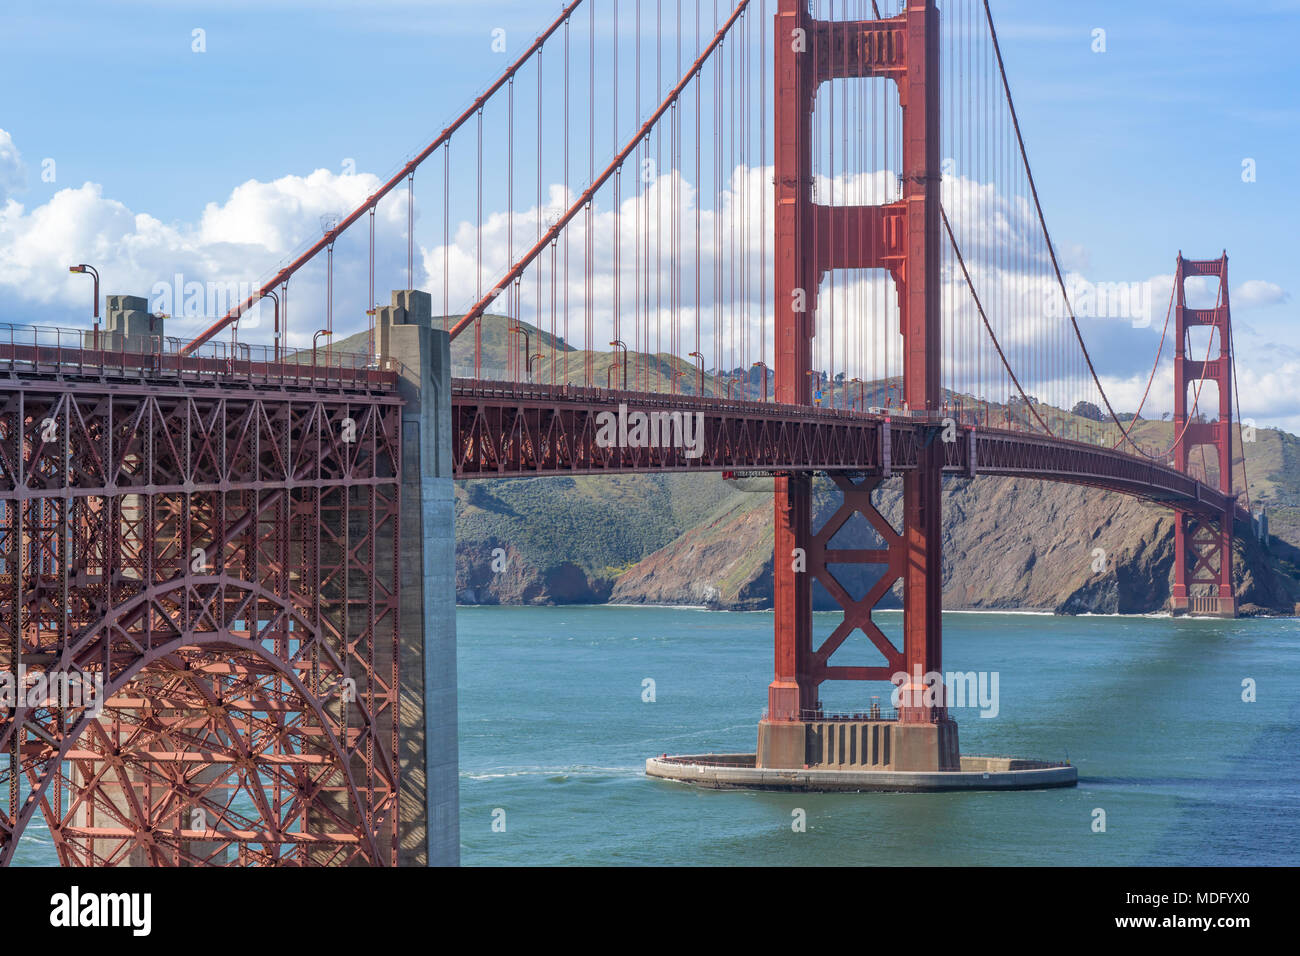 View of the Golden Gate Bridge from above Fort Point looking towards Marin Headlands. - Stock Image